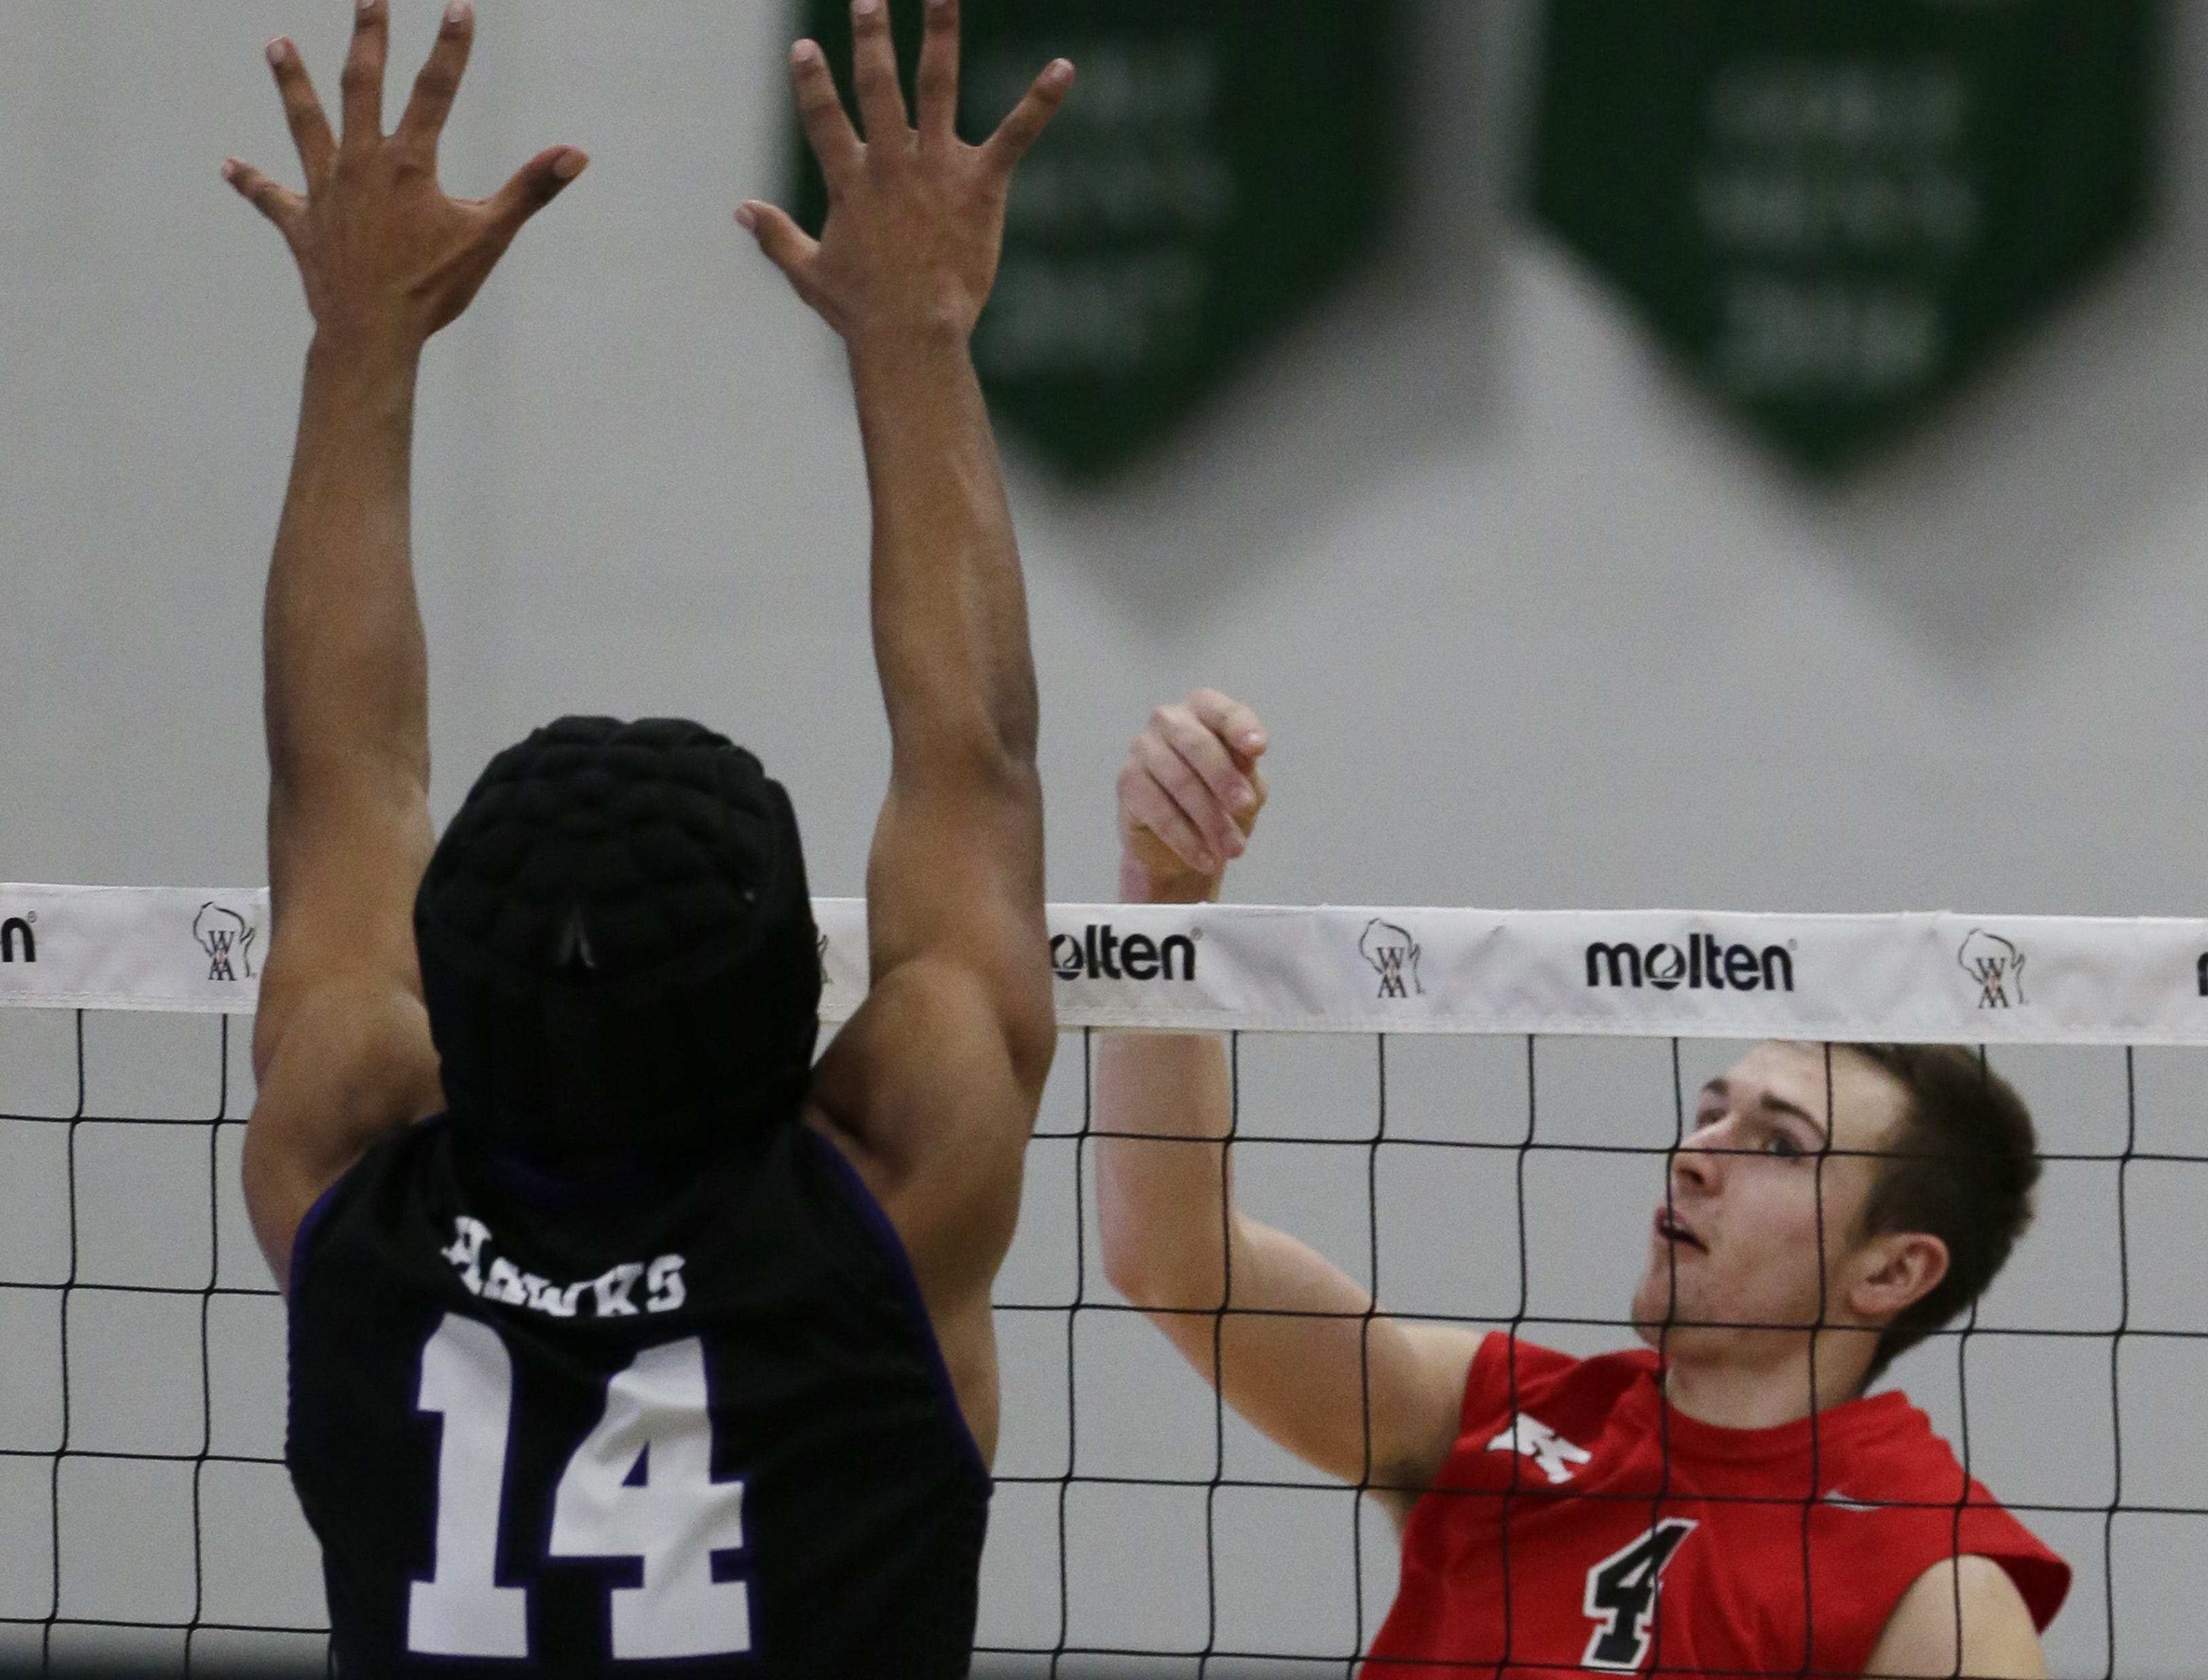 Kimberly's Trey Anderson bumps the ball over the net.  Kimberly Papermakers played Kenosha Indian Trail Hawks in Division 1 WIAA boys volleyball playoff semi-final, Saturday, November 10, 2018 at Wisconsin Lutheran College in Milwaukee, Wis. Joe Sienkiewicz/USA Today NETWORK-Wisconsin